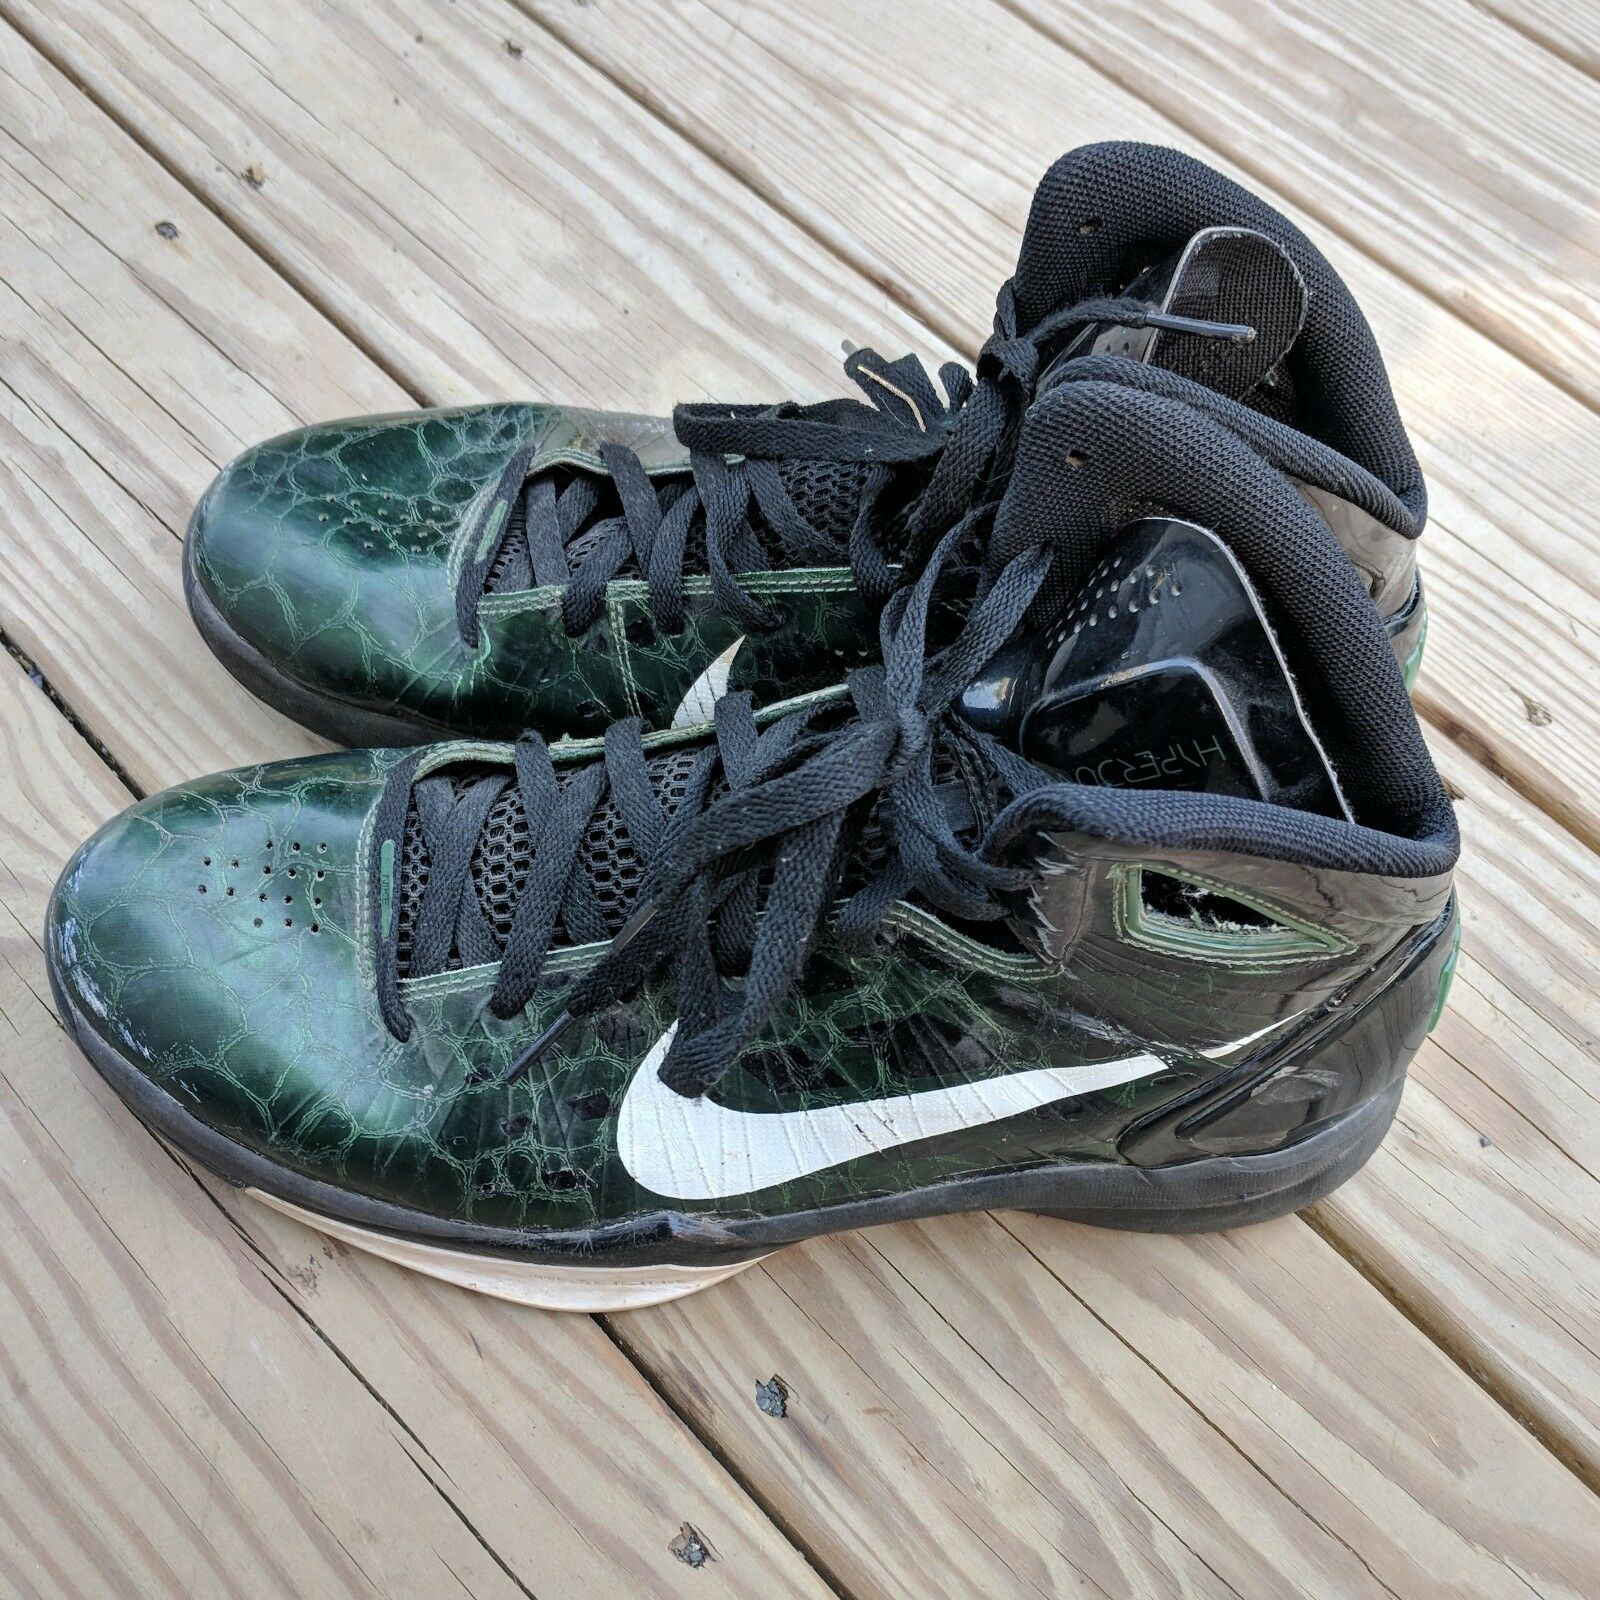 Nike Hyperdunk 2018 Men's Basketball Sneakers Shoes Comfortable Seasonal price cuts, discount benefits The most popular shoes for men and women